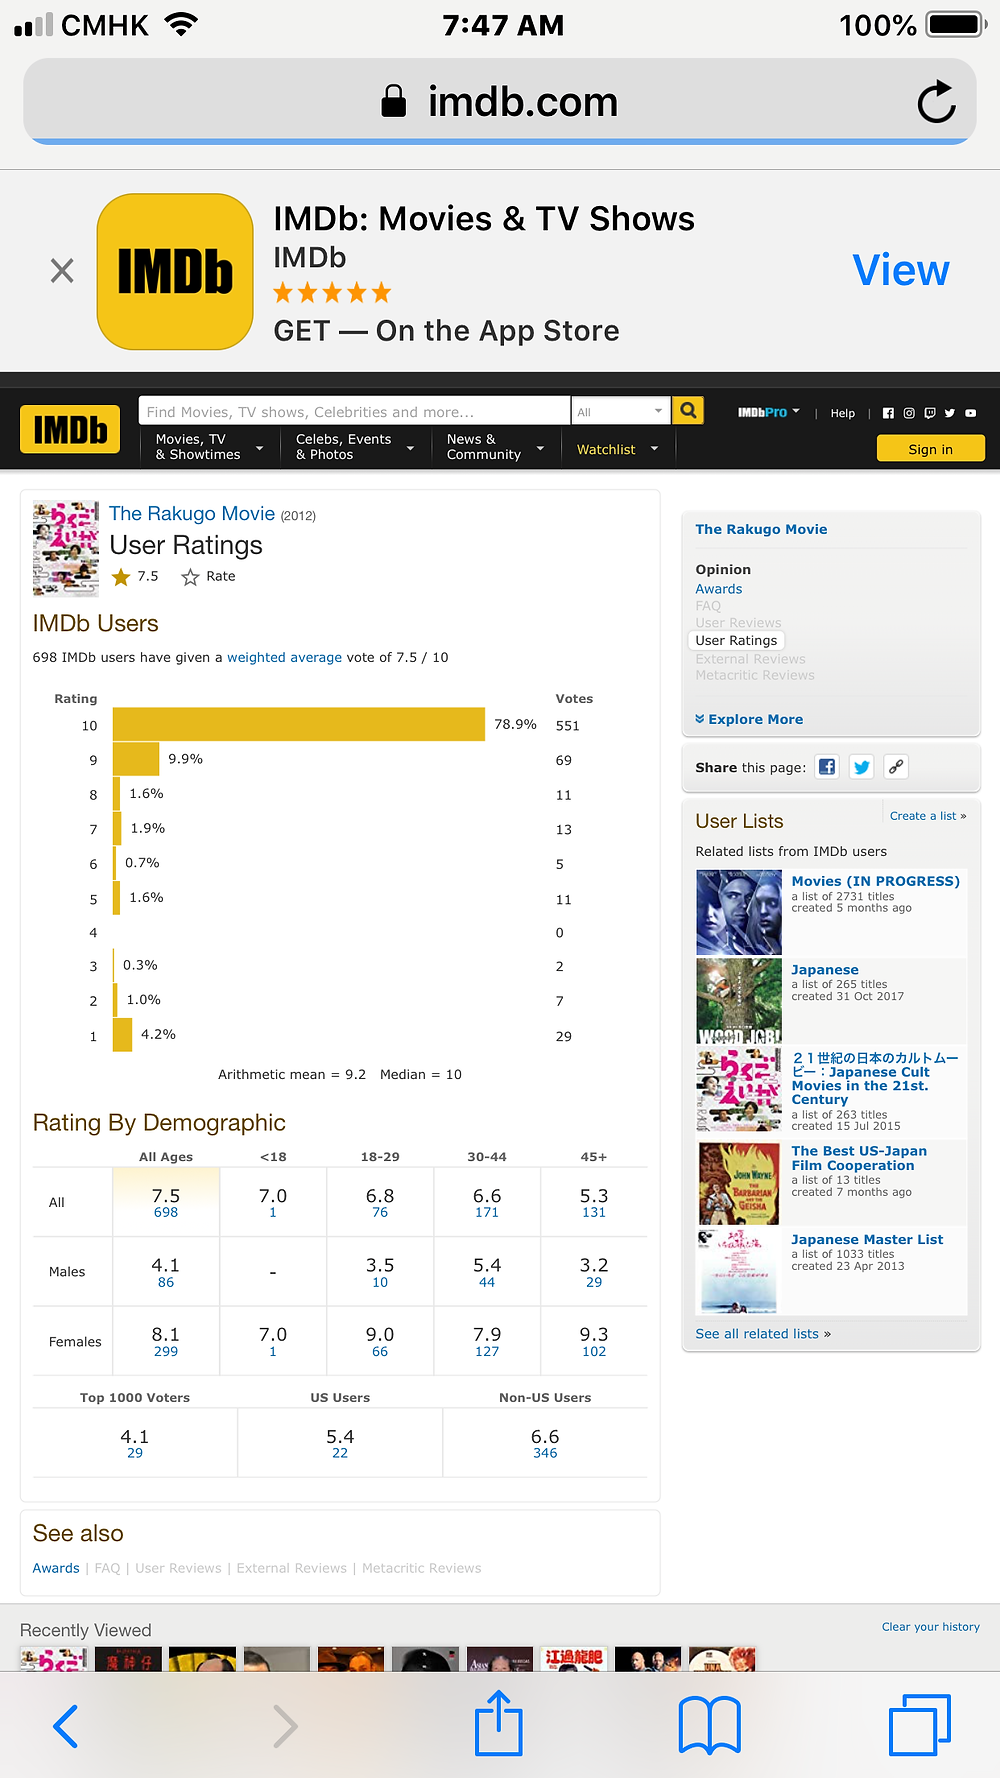 At 7:47 am (China), Aug.13 2019.  698 IMDb users voted 7.5 / 10; Top 1000 users voted 4.1; US users voted 5.4; Non US users voted 6.6.